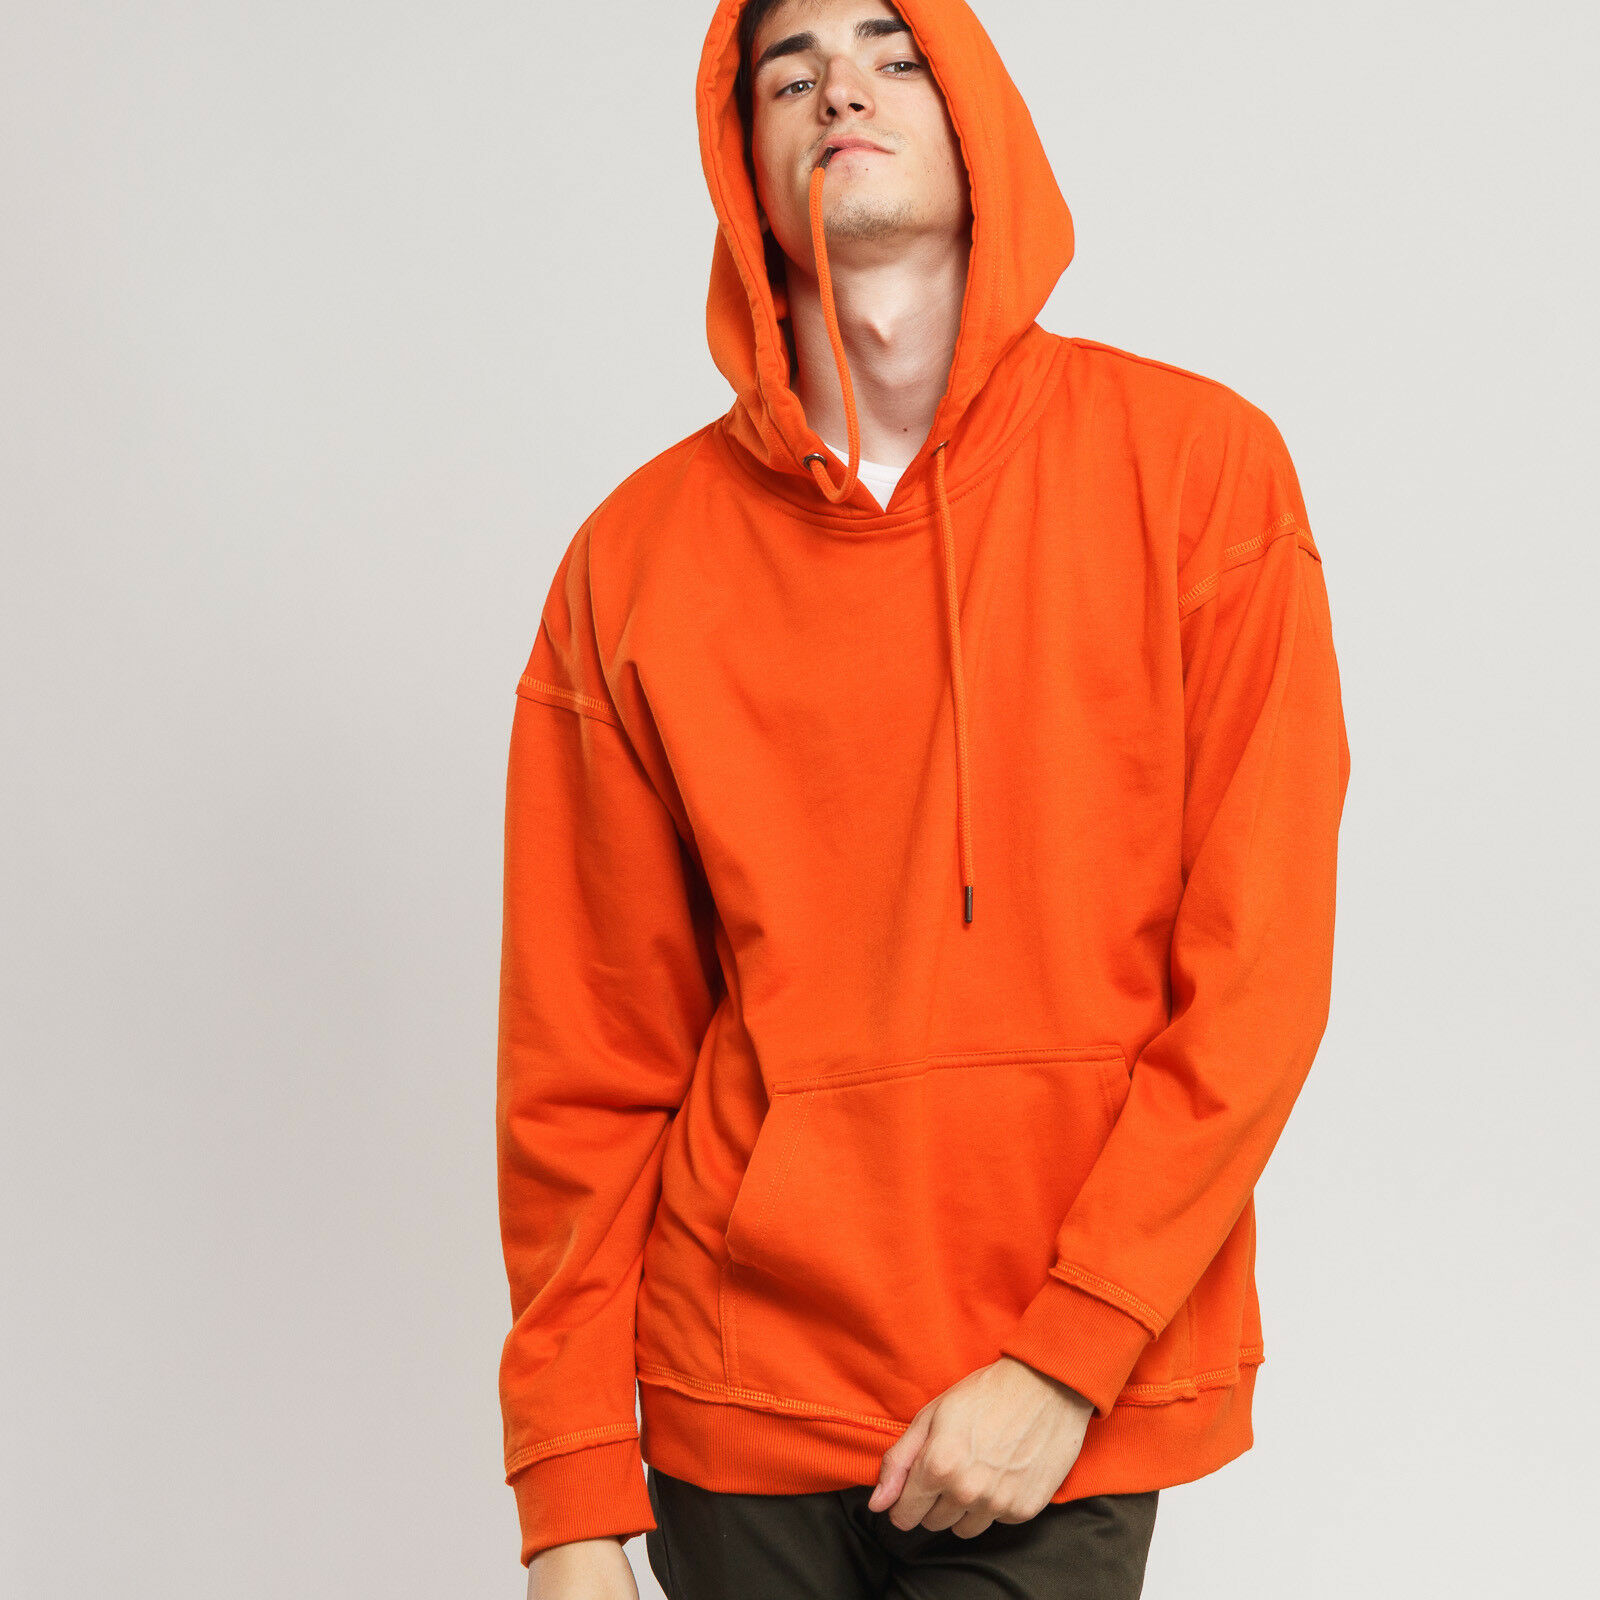 Urban Classics OverGrößed Sweat Hoody Orange XXL, Orange, TB1593